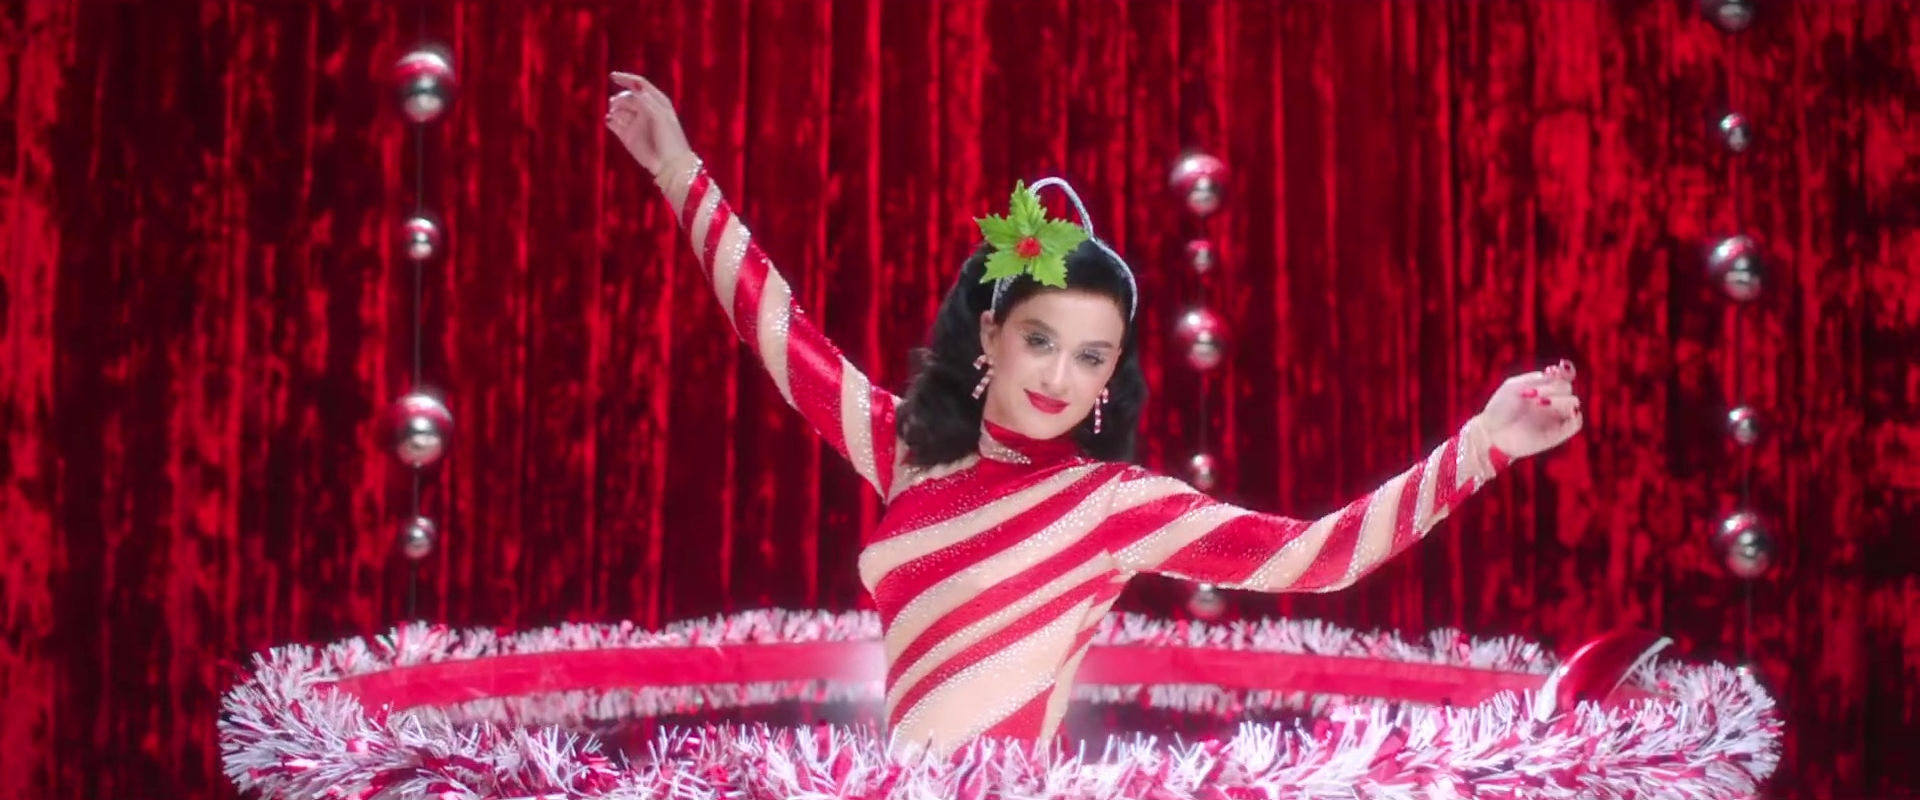 katy perry clip cozy little christmas